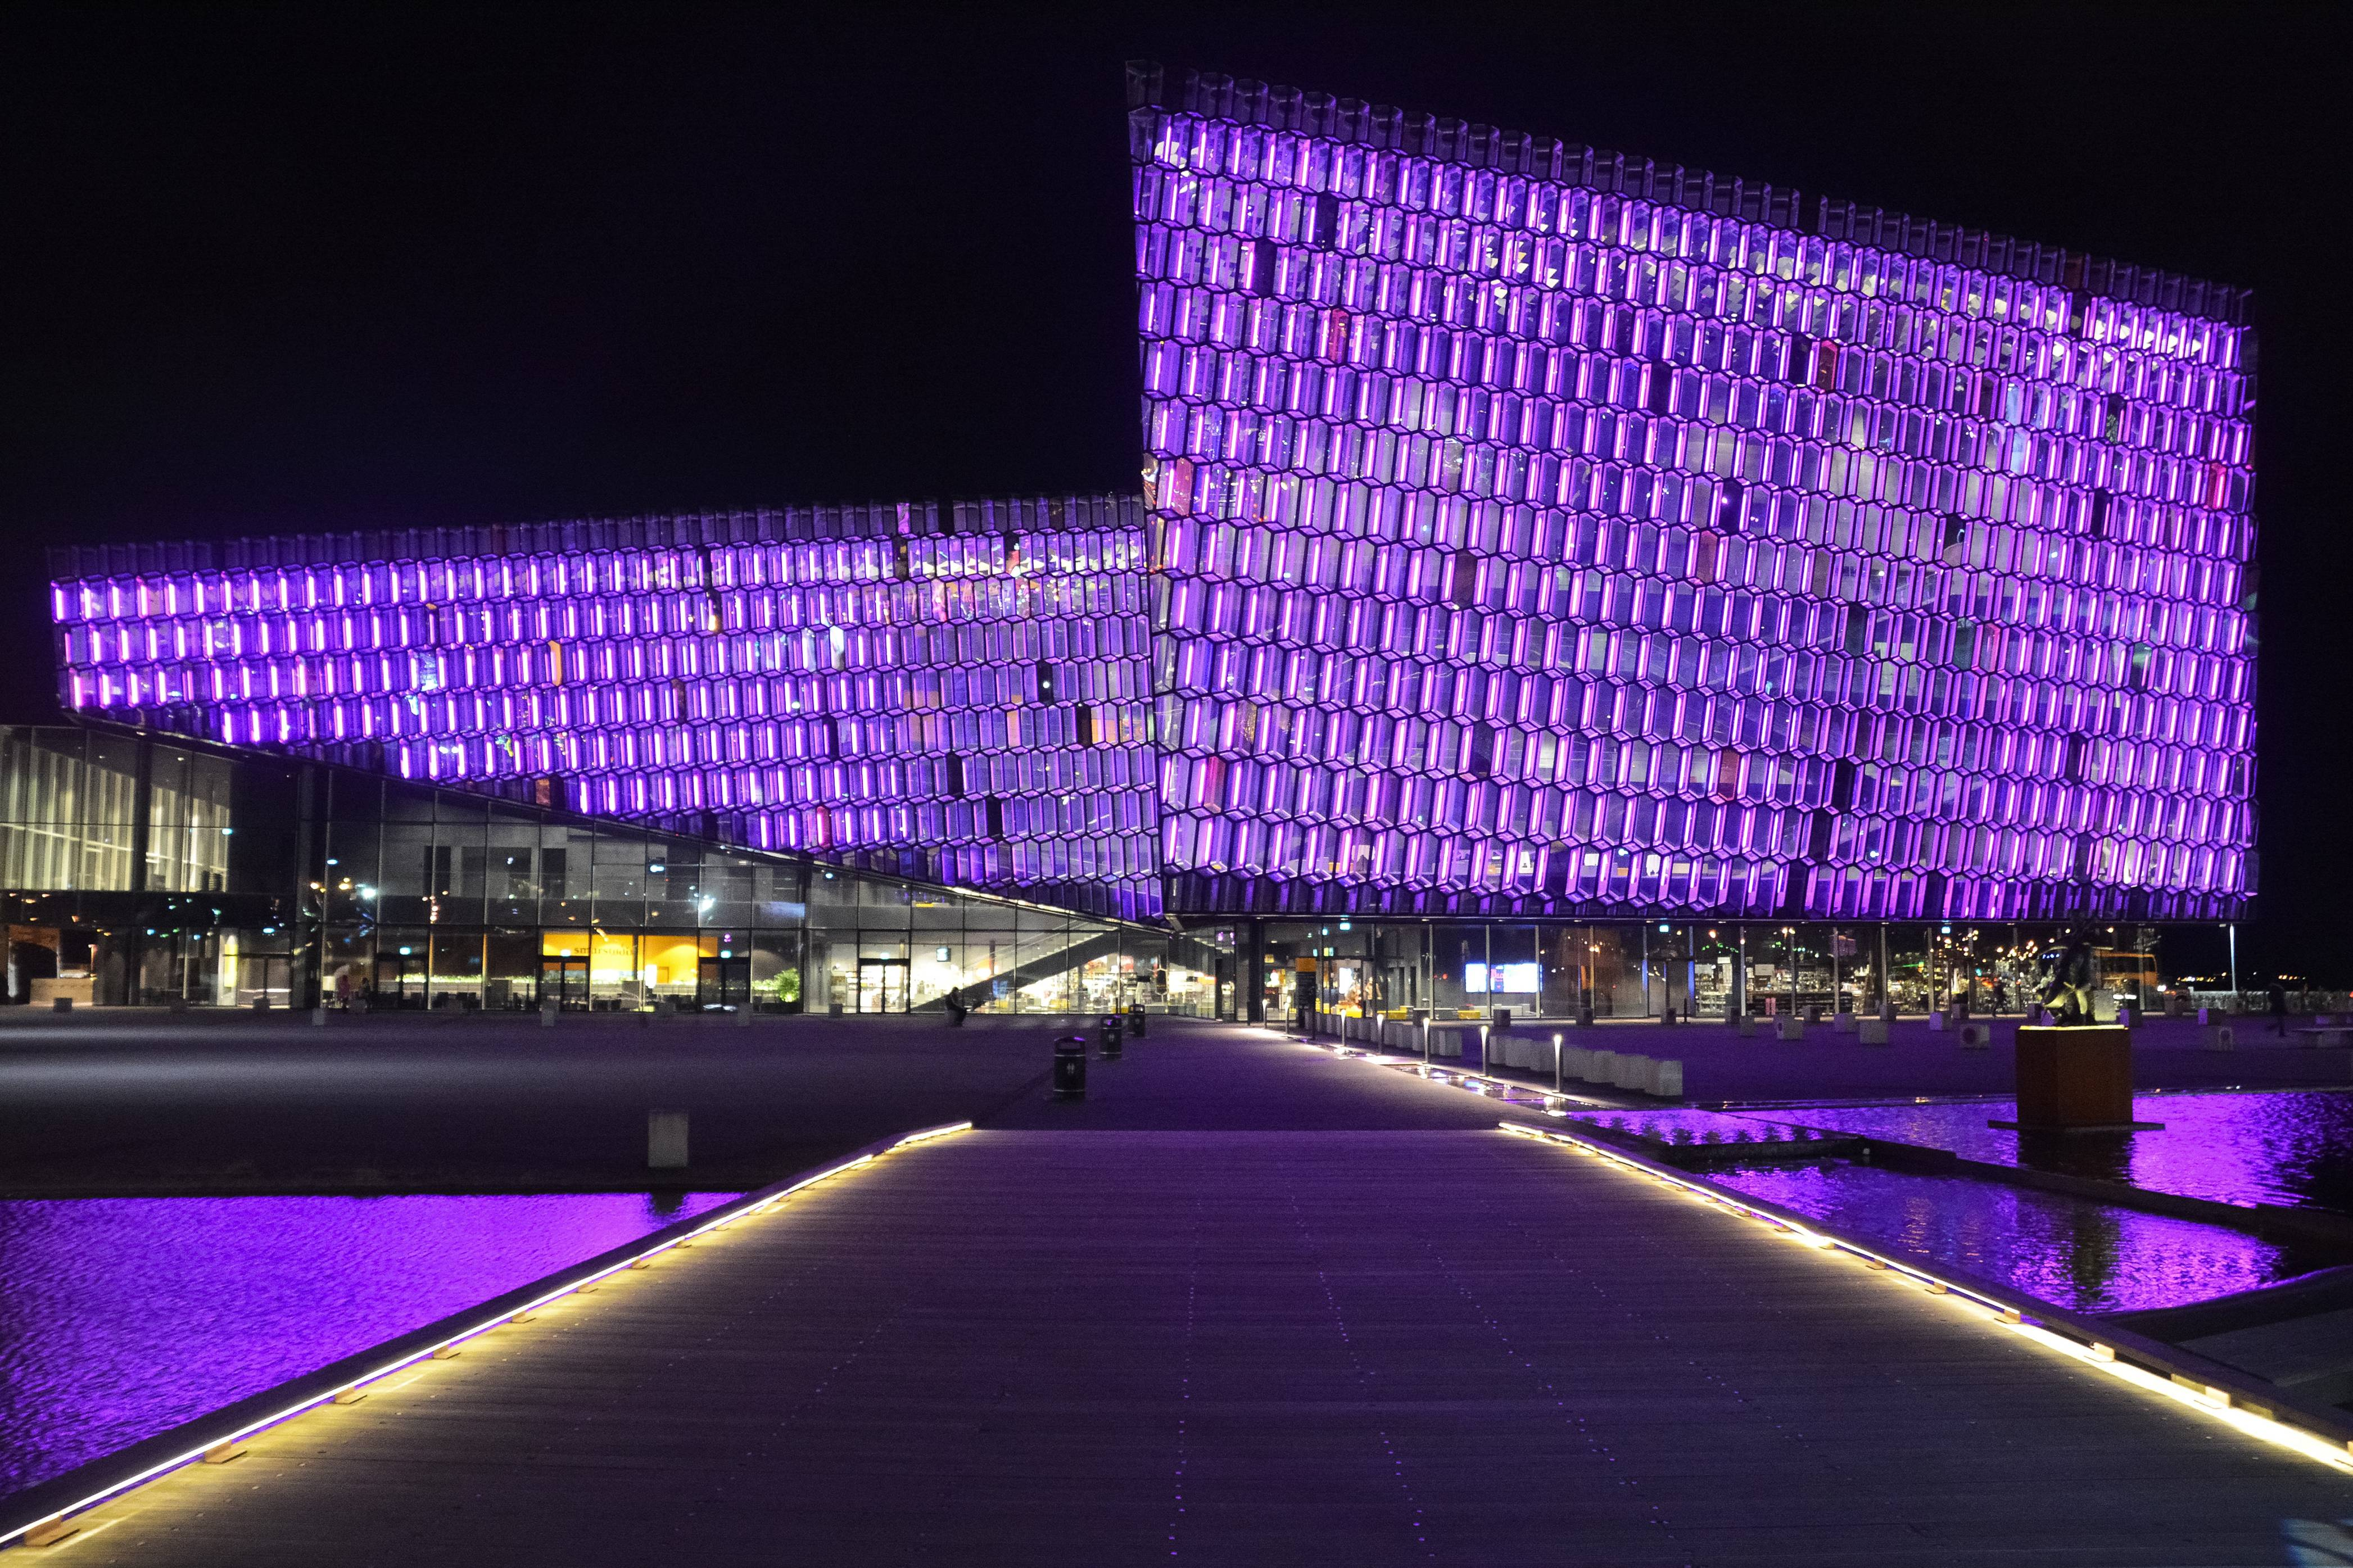 Harpan-concert-hall-in-down-town-reykjavik-in-purple-lights-at-night